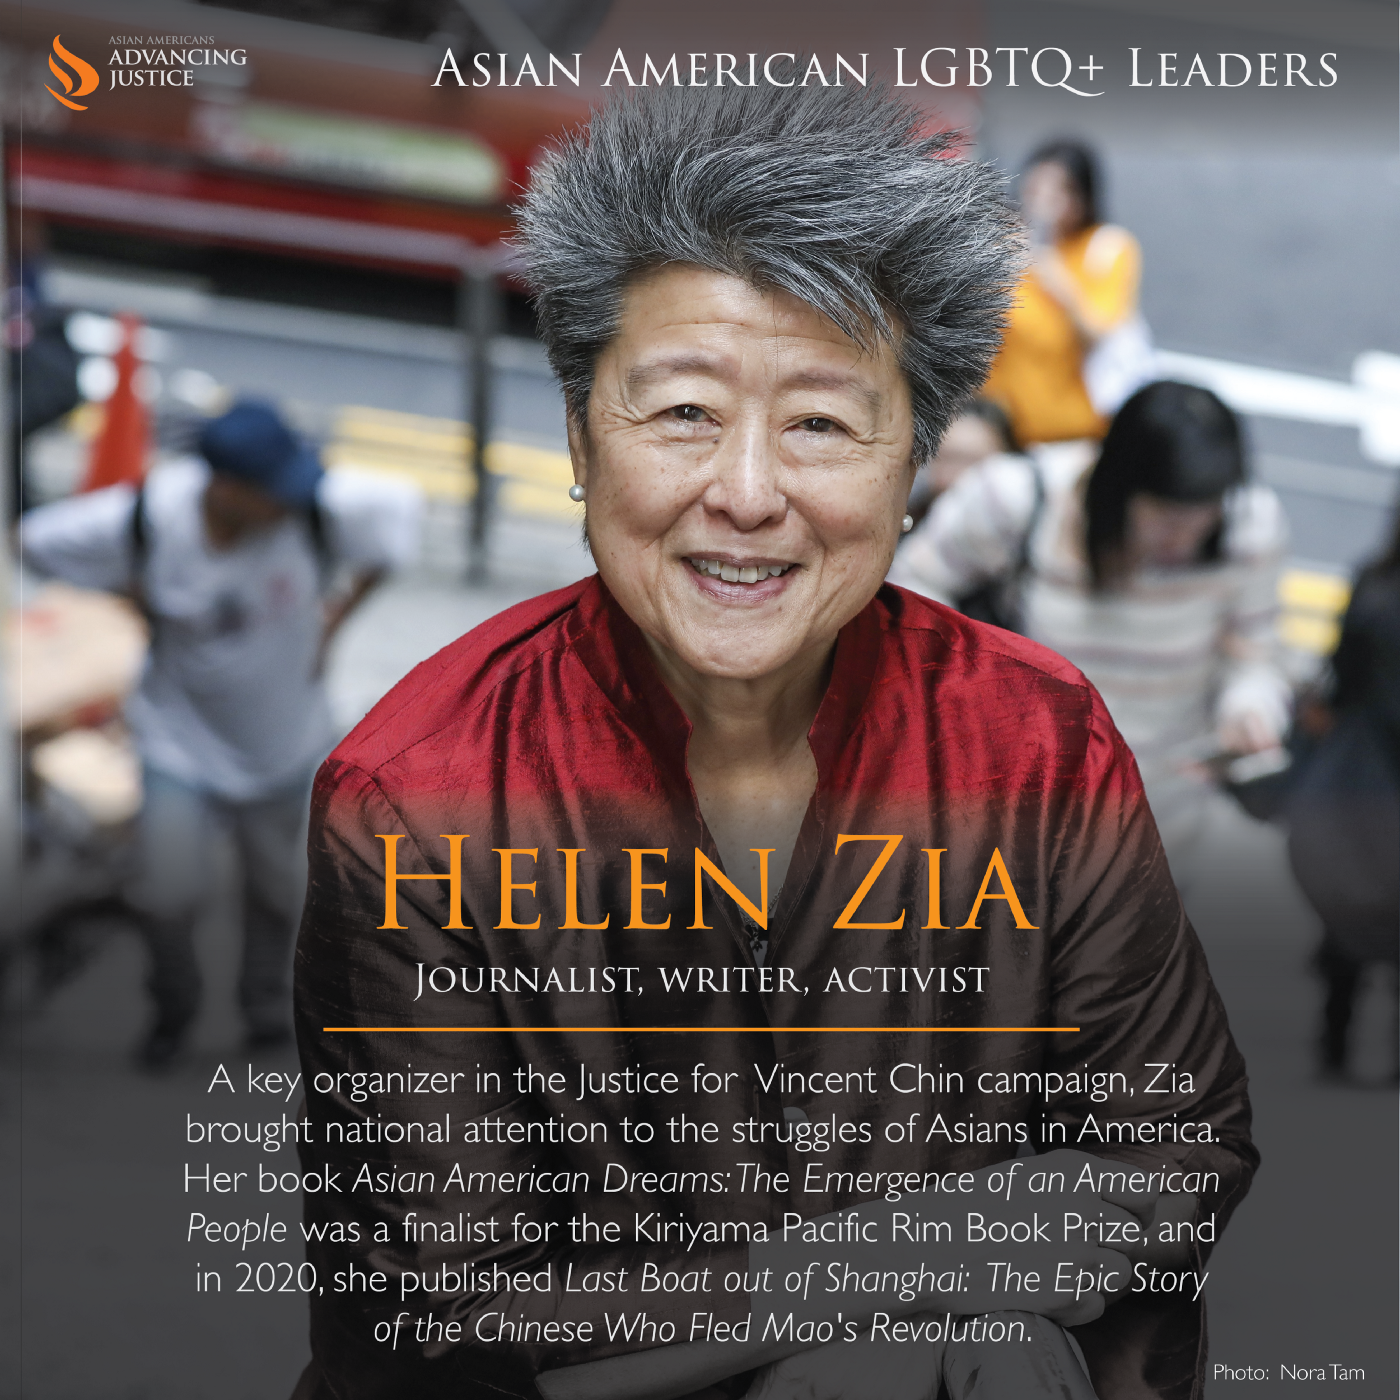 Zia wearing a red shirt, smiling into the camera in front of a blurred street. The text reads: Helen Zia, Journalist, writer, activist. A key organizer in the Justice for Vincent Chin campaign, Zia brought national attention to the struggles of Asians in America. Her book Asian American Dreams: The Emergence of an American People was a finalist for the Kiriyama Pacific Rim Book Prize, and in 2020, she published Last Boat out of Shanghai: The Epic Story of the Chinese Who Fled Mao's Revolution.